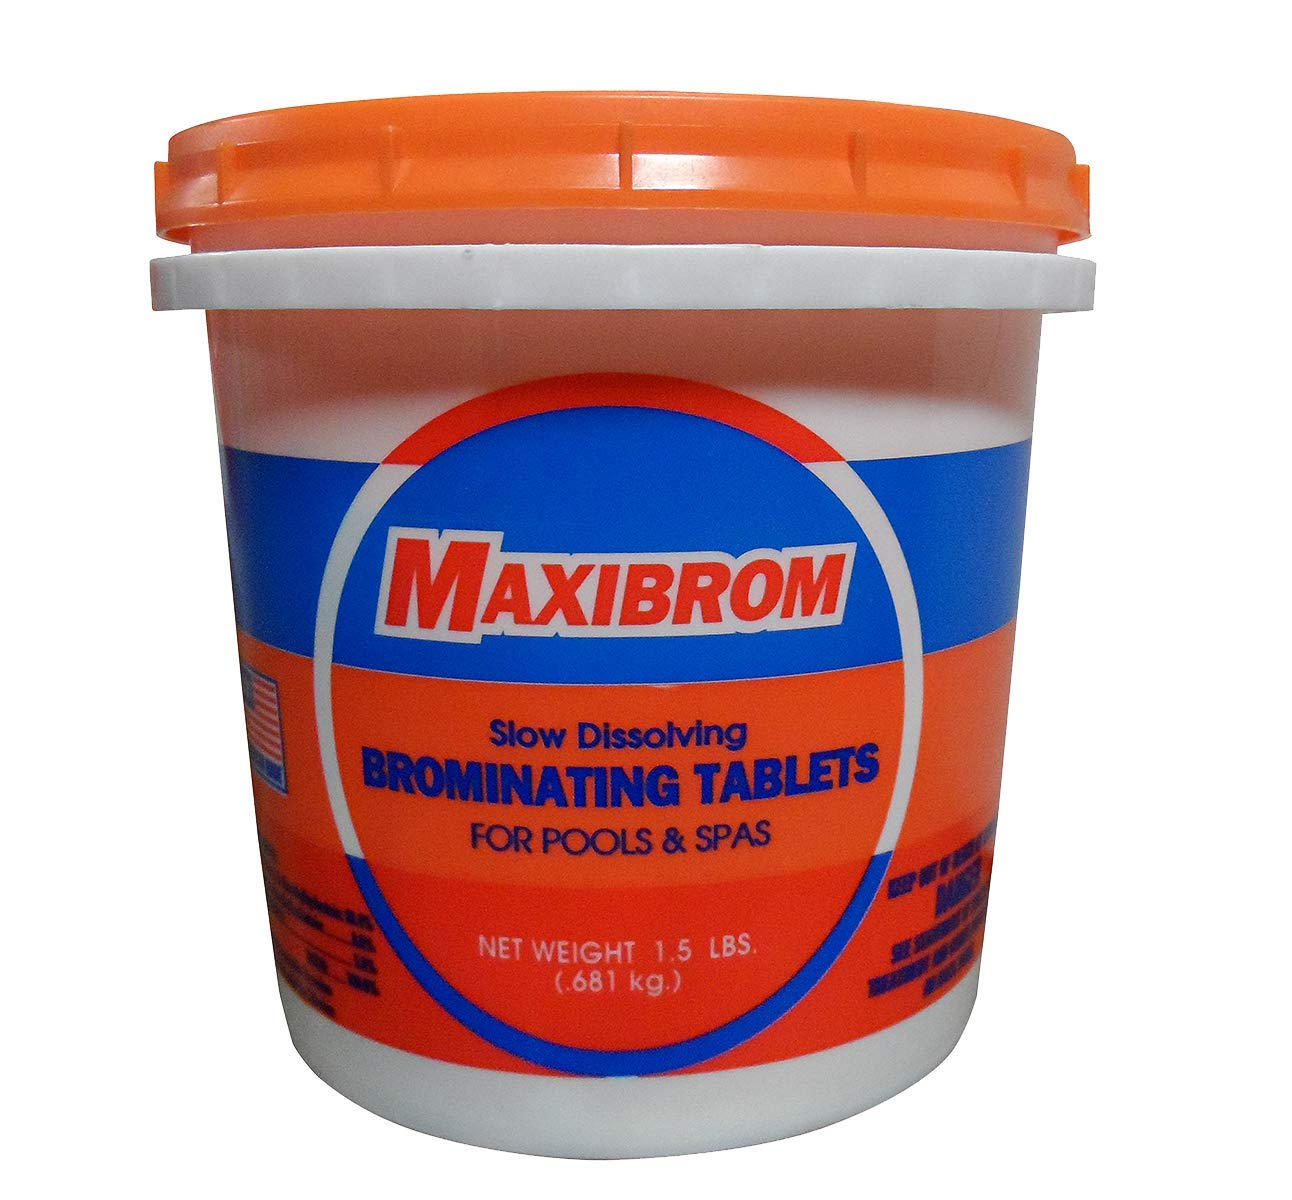 Maxibrom Disinfectant Sanitizing Slow Dissolving Mini Bromine Tablets Hot Tubs & Spas 1.5 LB Bucket - 5109